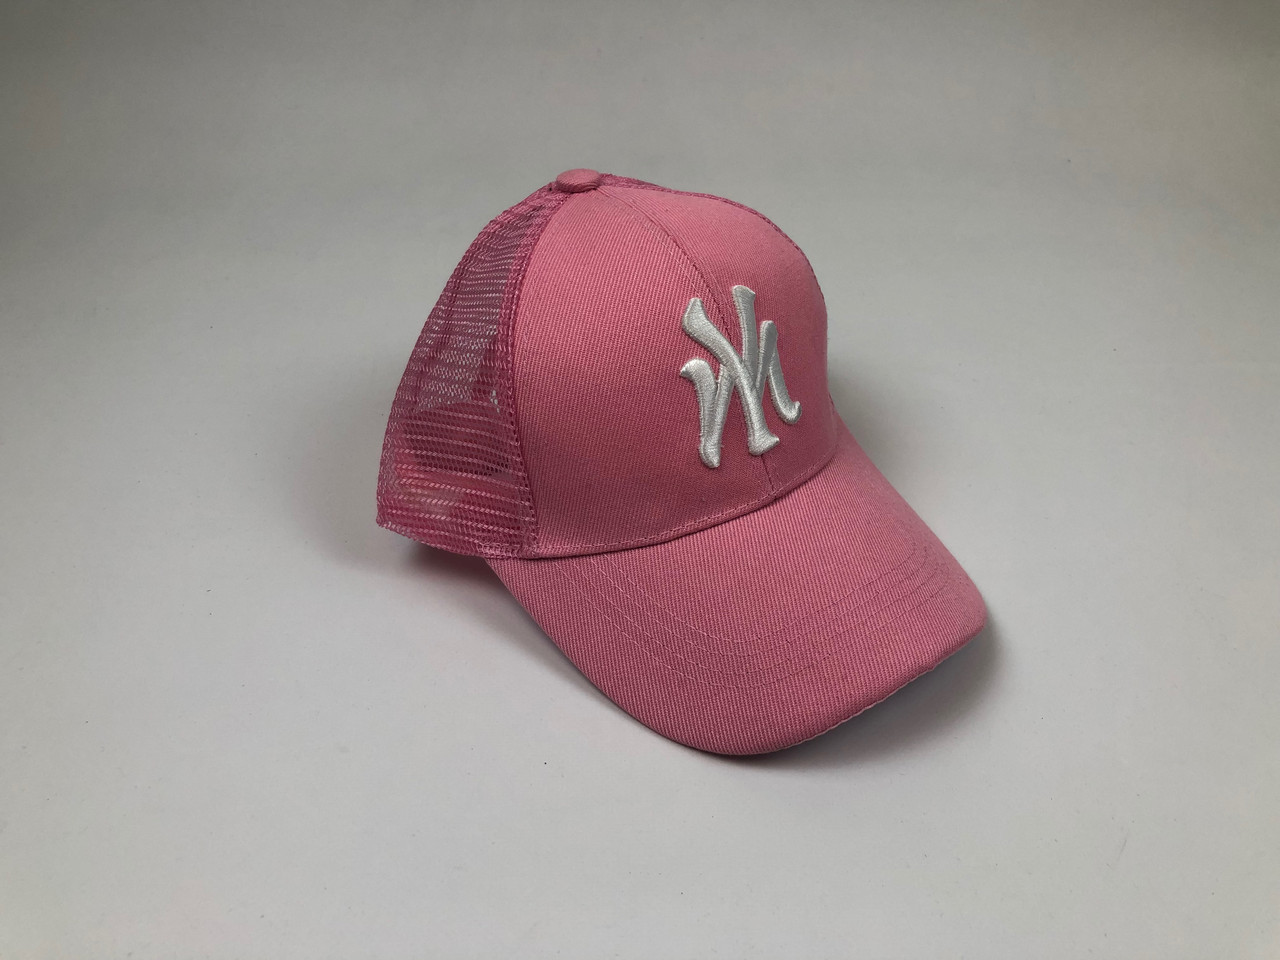 Тракер бейсболка New York Yankees - розовый